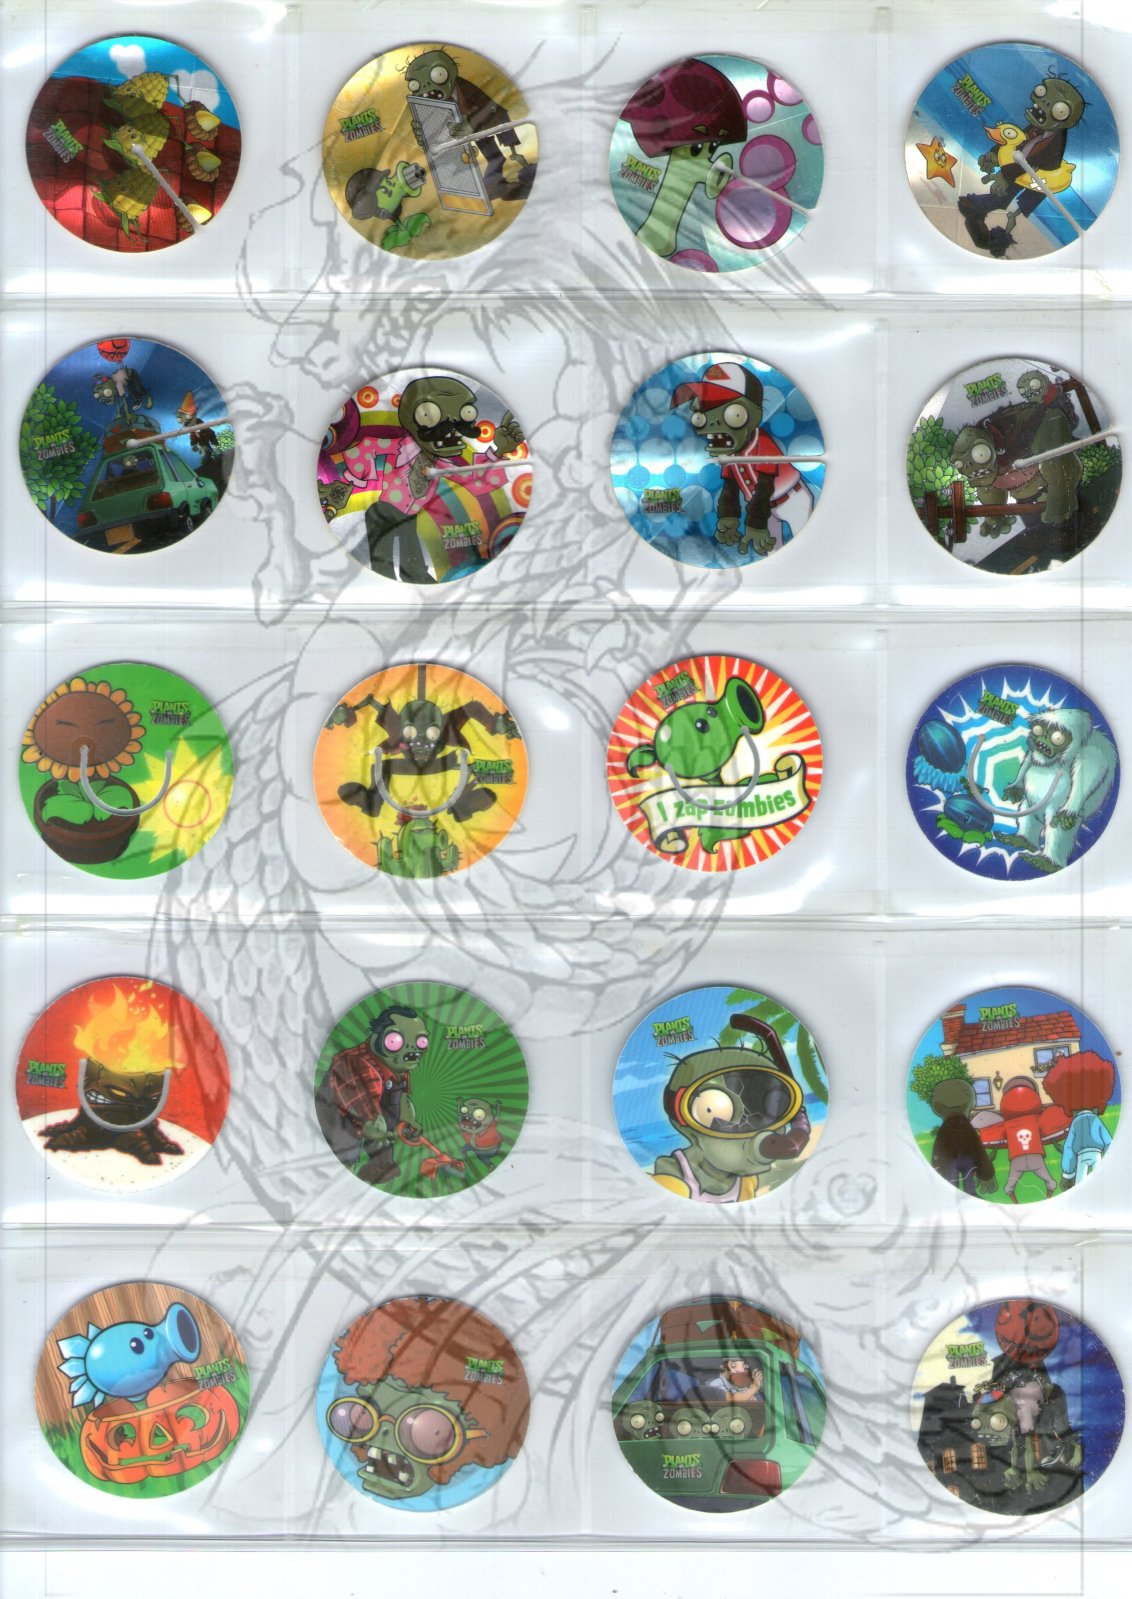 Tazos Plantas Vs Zombies de SABRITAS X6m0aq